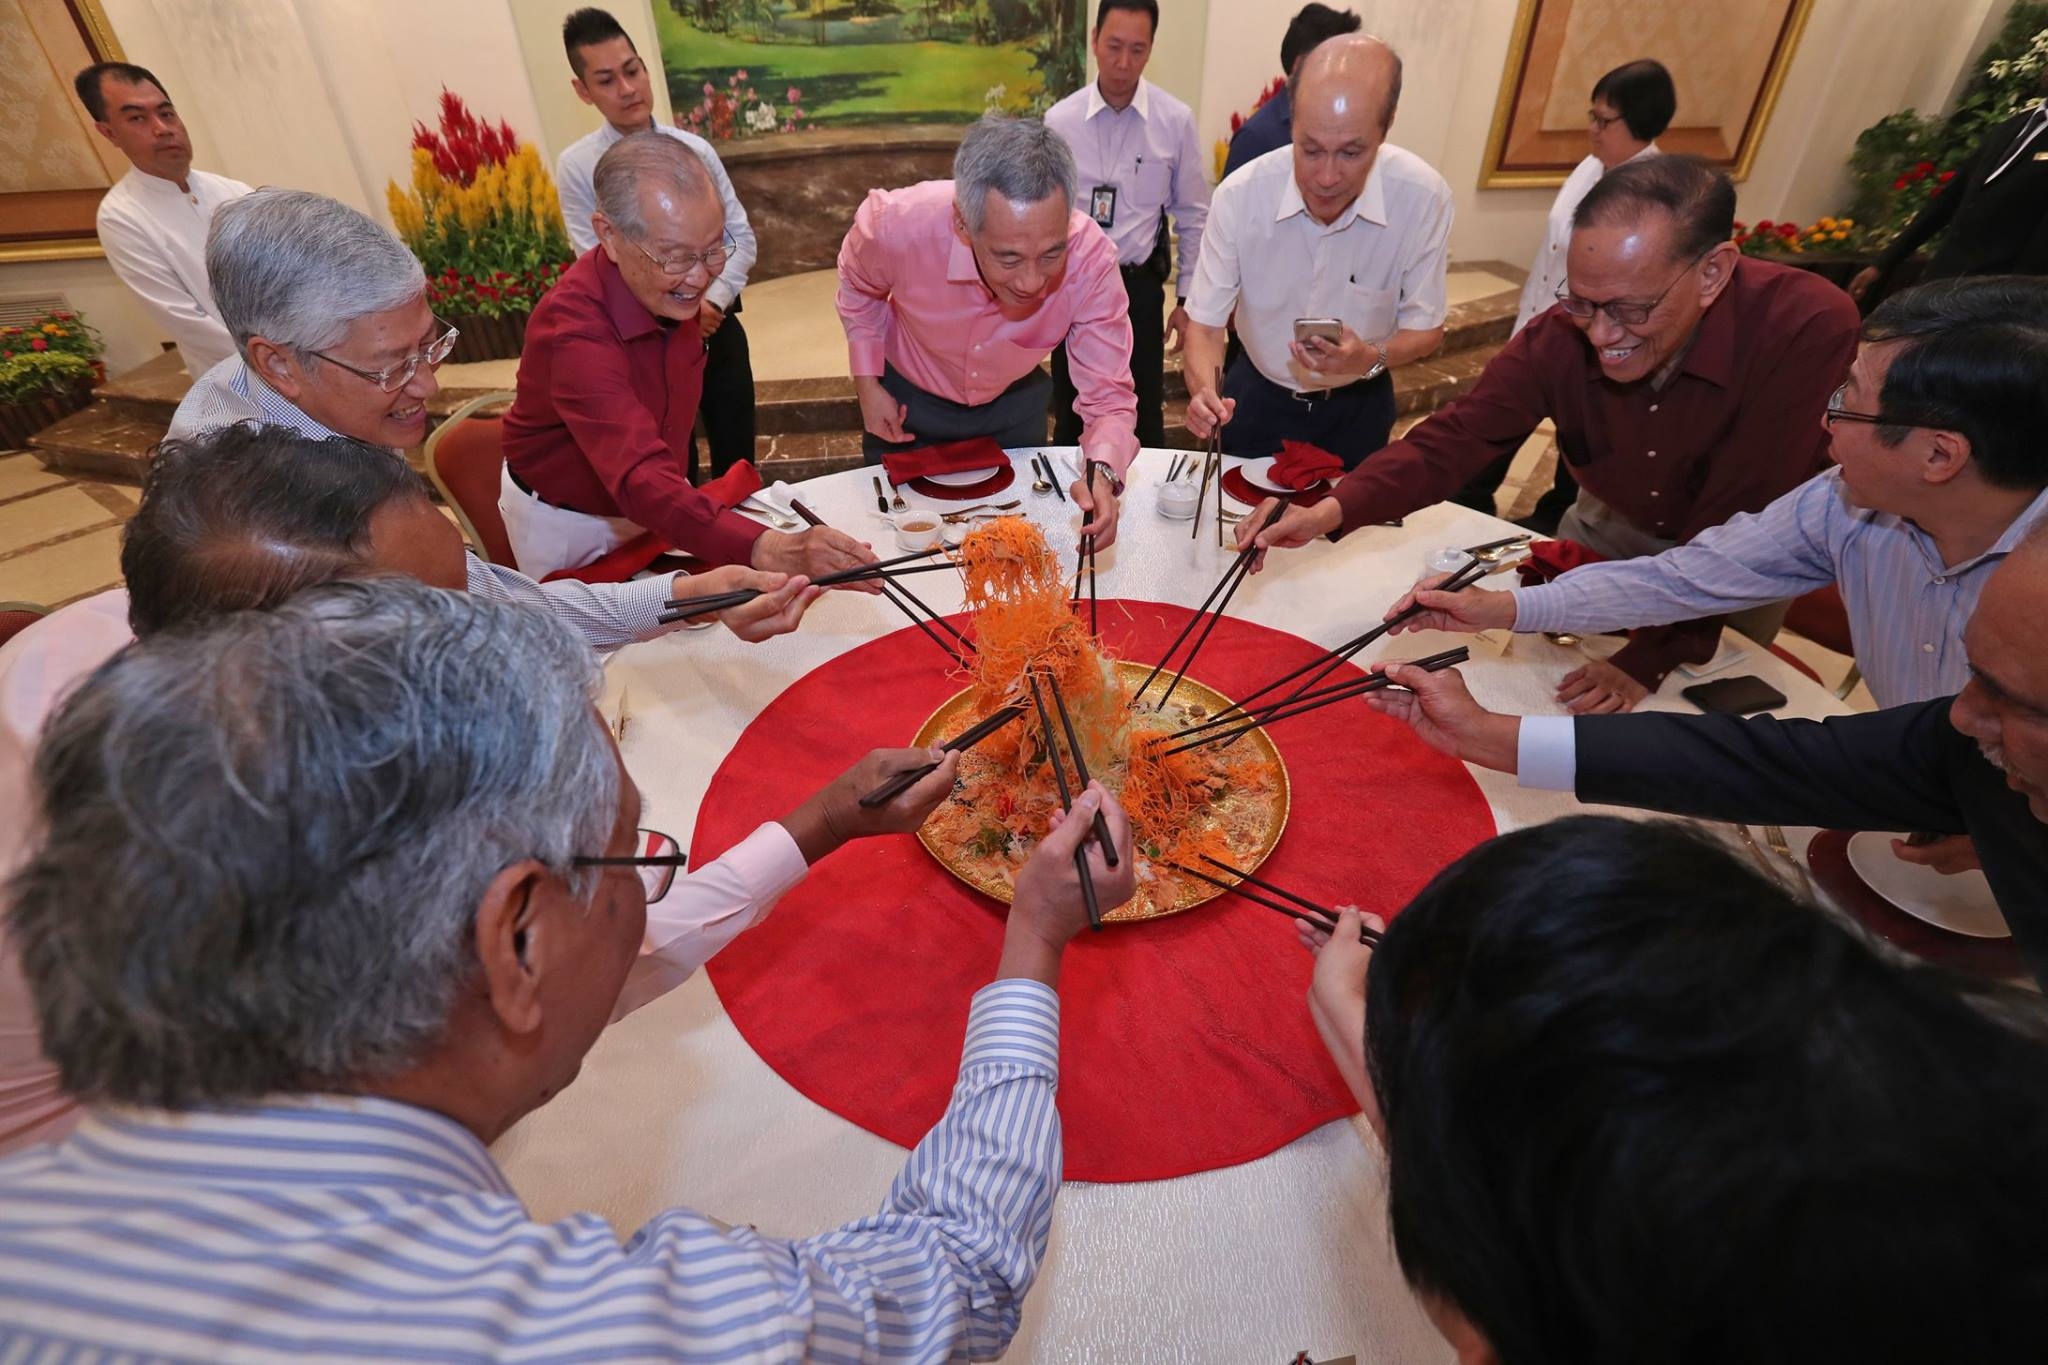 Singapore Prime Minister Lee Hsein Loong enjoying the traditional yu sheng dish along with former Members of Parliament.